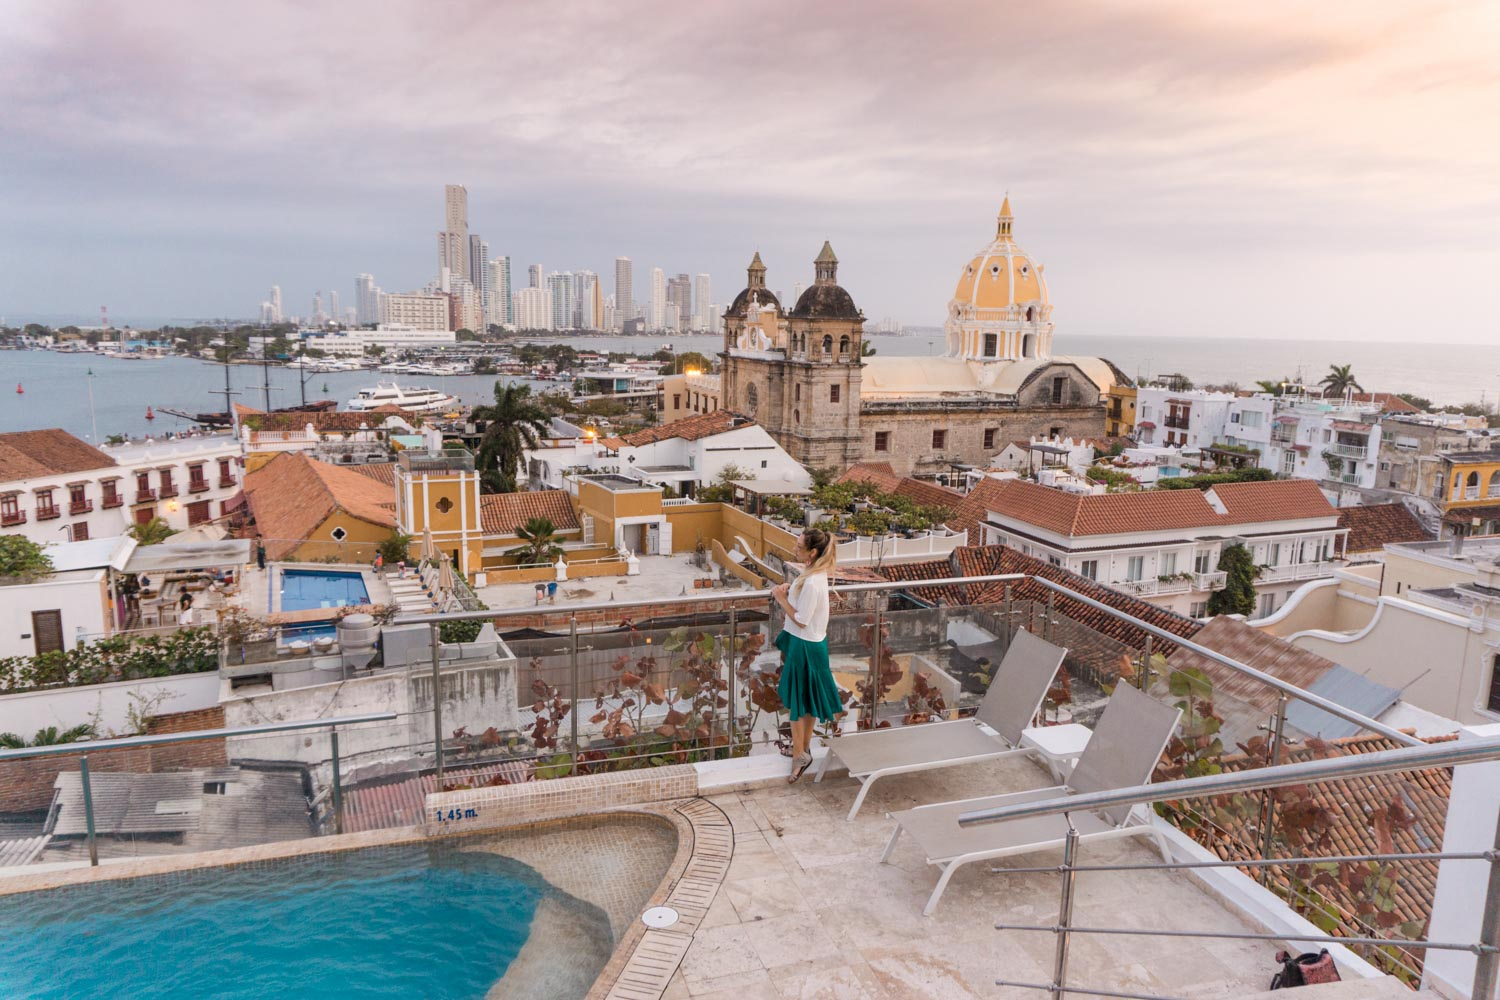 Movich hotel cartagena rooftop